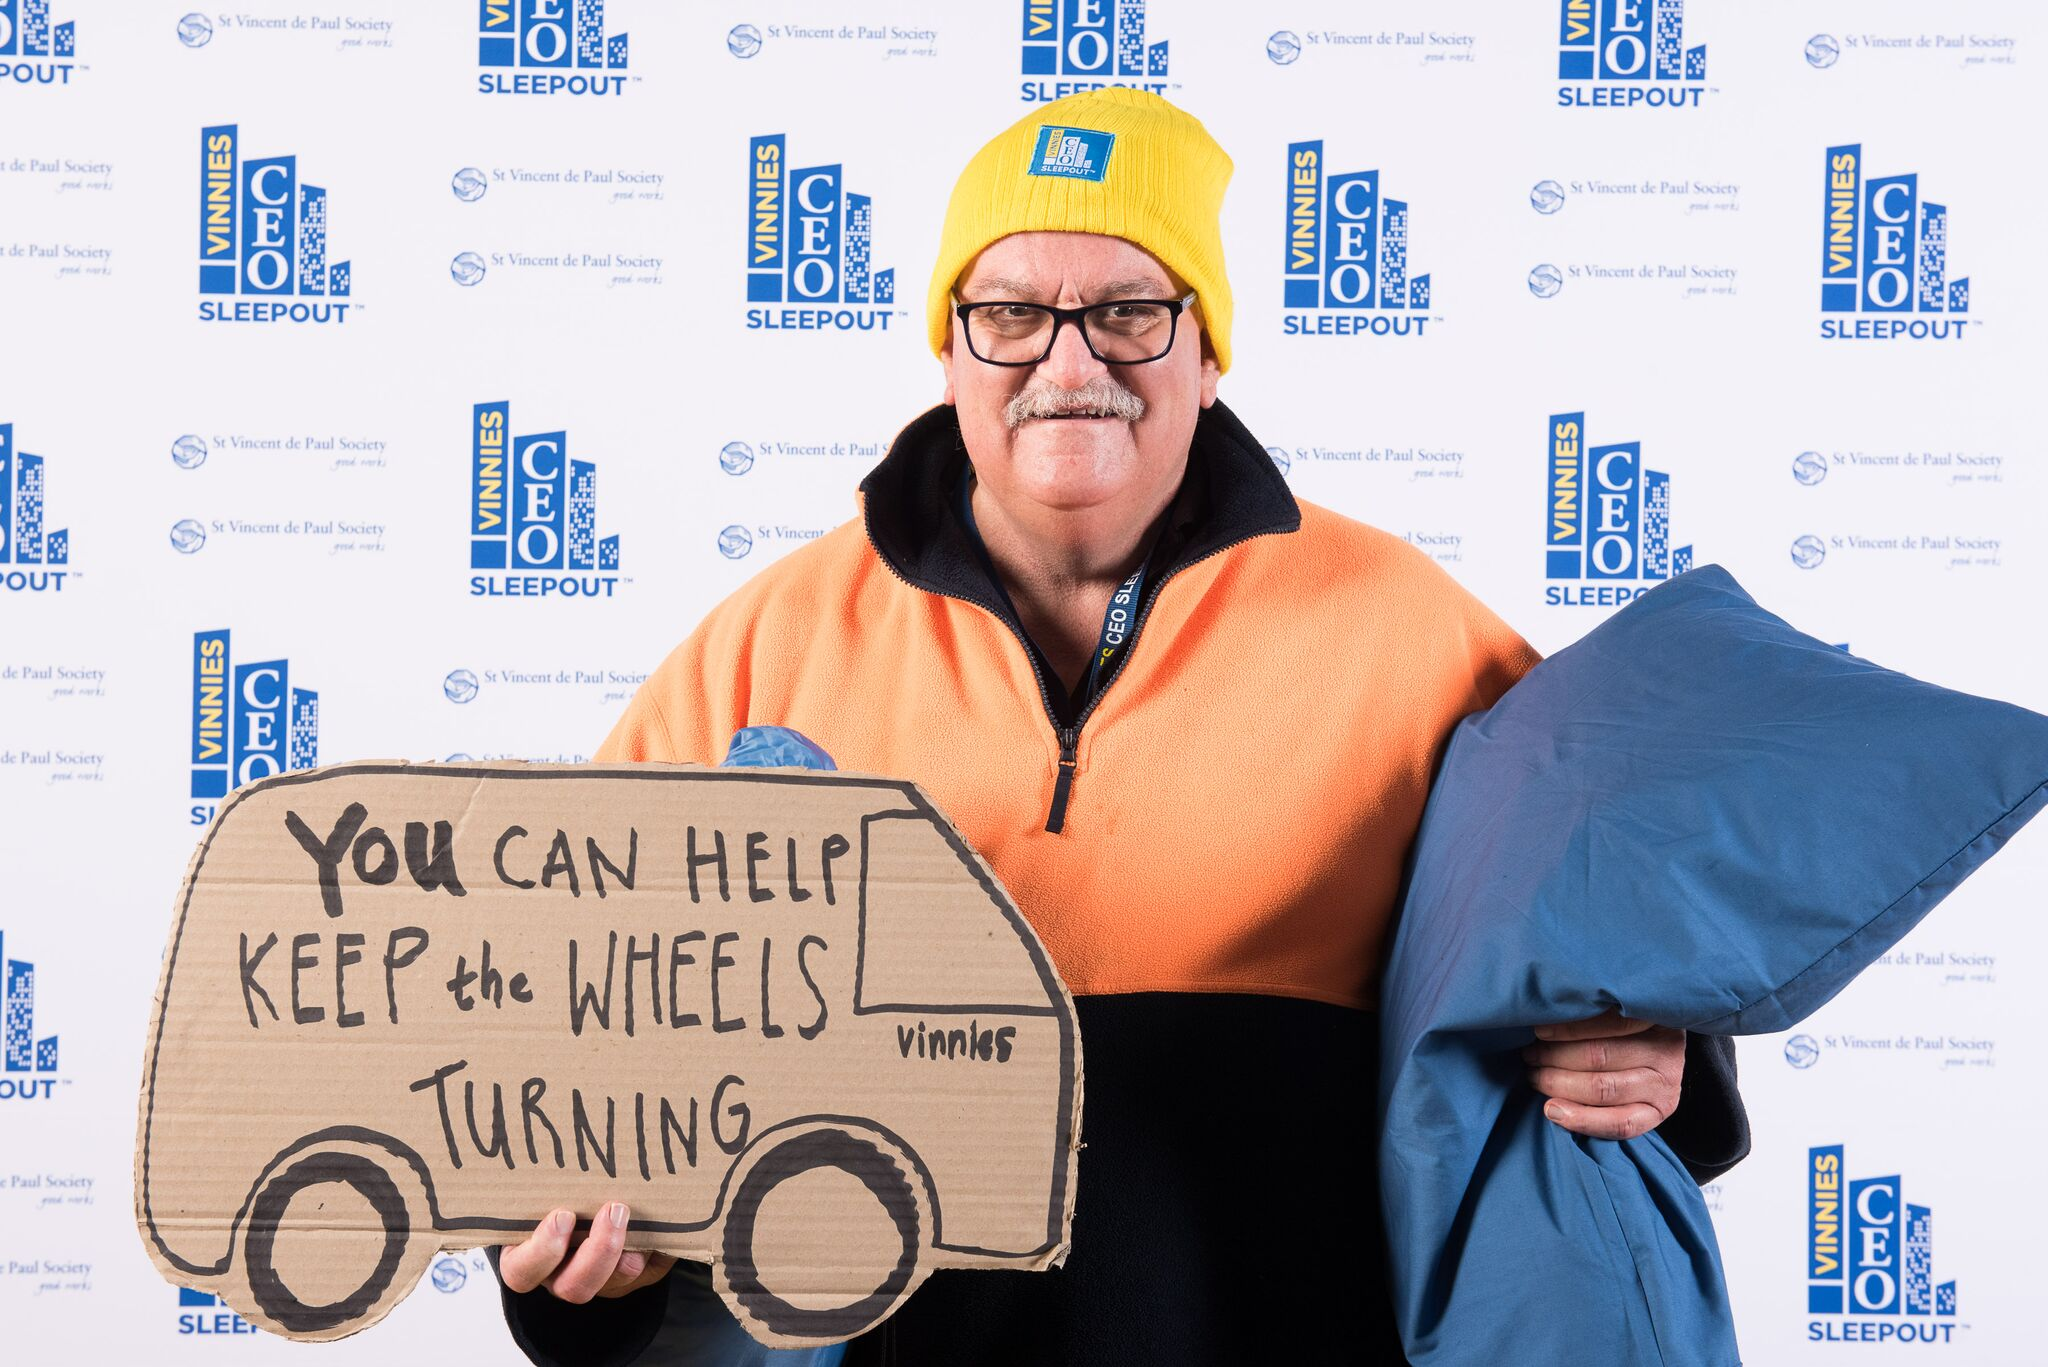 Thank you to all who make donations and spread the word on my Vinnies CEO Sleepout effort. We raised over $10,000 and a great deal of awareness. Next step? Our parliamentary inquiry into homelessness.